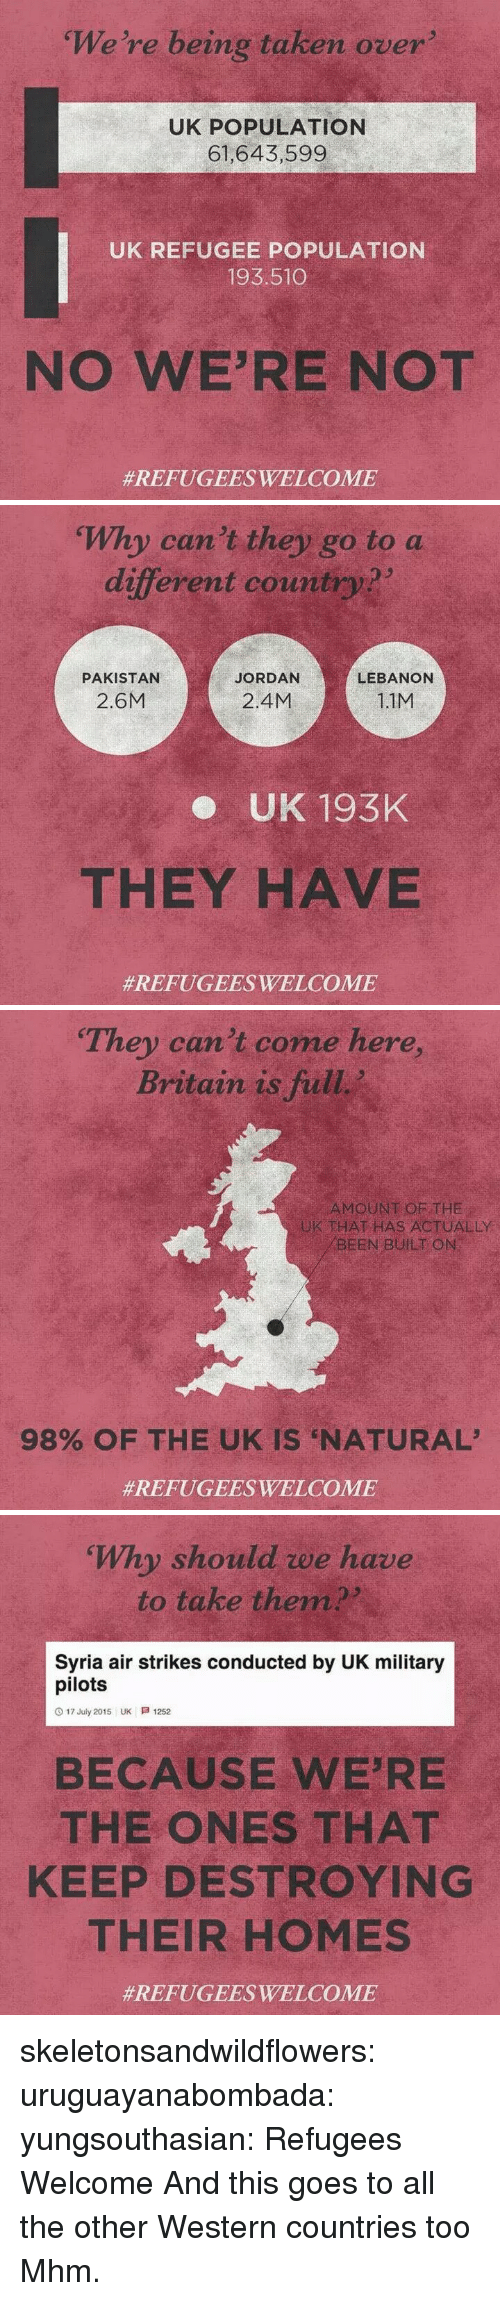 Pilots: We're being taken over  UK POPULATION  61,643,599  UK REFUGEE POPULATION  193.510  NO WE'RE NOT  #REFUGEESWELCOME   Why can't they go to a  different country?  PAKISTAN  JORDAN  LEBANON  2.6M  2.4M  1.1M  e UK 193K  THEY HAVE  #REFUGEESWELCOME   They can't come here,  Britain is full  AMOUNT OF THE  THAT HAS ACTUALLY  BEENBUİLT ON  98% OF THE UK IS 'NATURAL'  #REFUGEESWELCOME   Why should we have  to take them  Syria air strikes conducted by UK military  pilots  O 17 July 2015 UK 1252  BECAUSE WE'RE  THE ONES THAT  KEEP DESTROYING  THEIR HOMES  skeletonsandwildflowers: uruguayanabombada:  yungsouthasian: Refugees Welcome  And this goes to all the other Western countries too   Mhm.